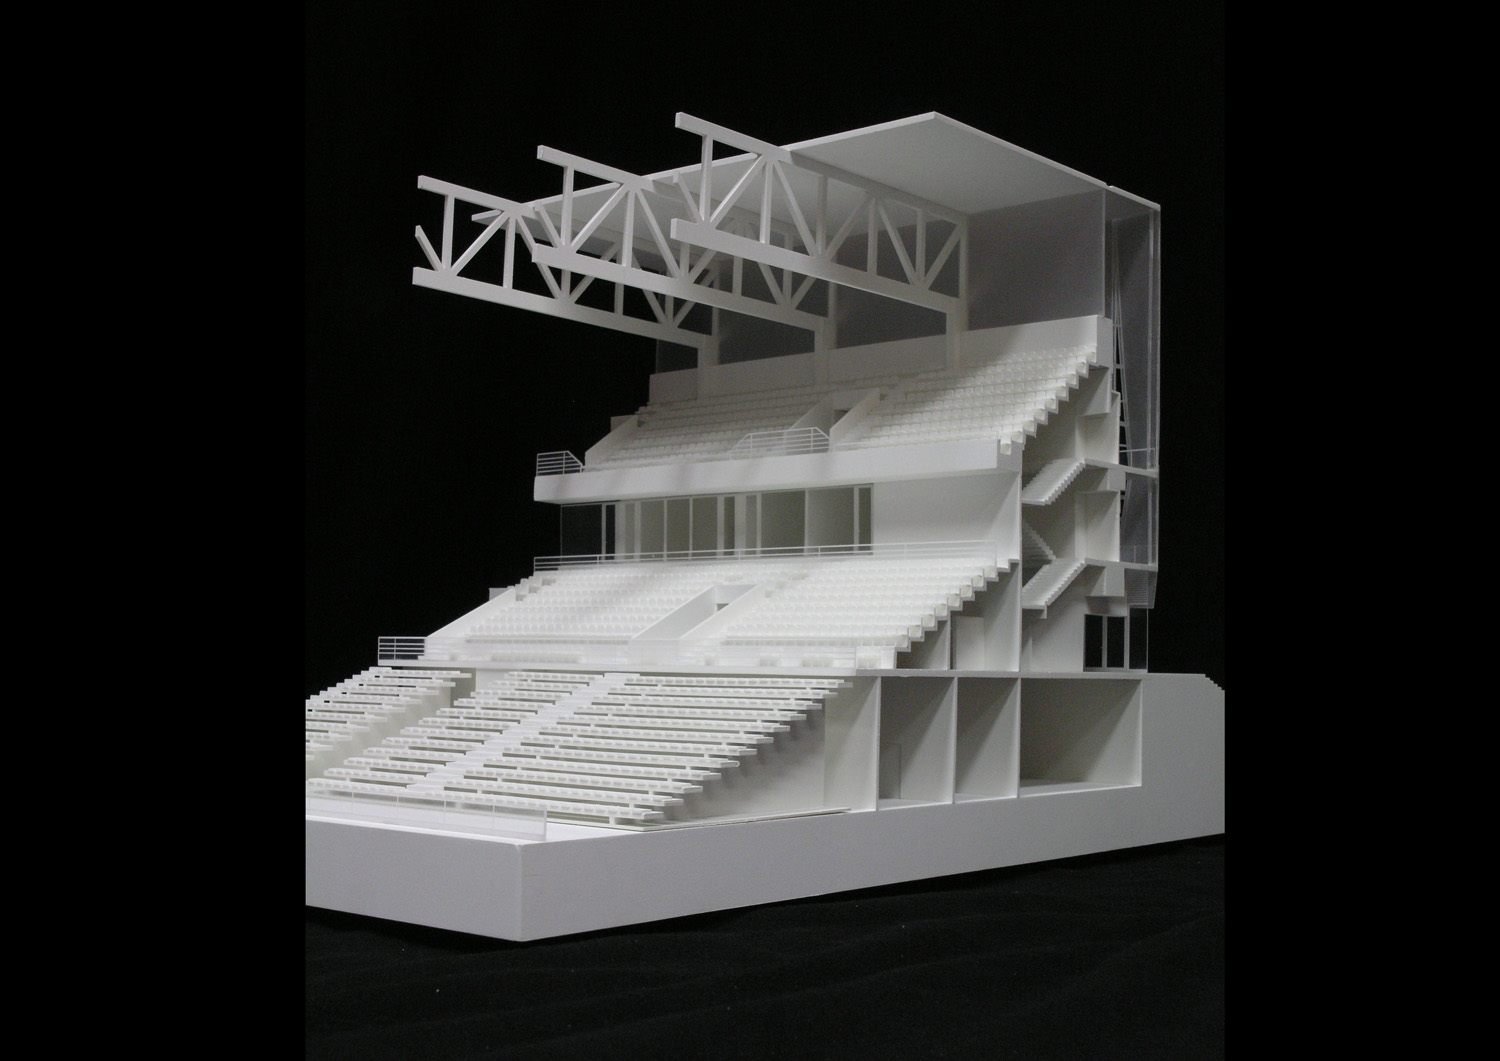 mm_Luanda Multisports Pavilion design by Berger Arquitectos_44